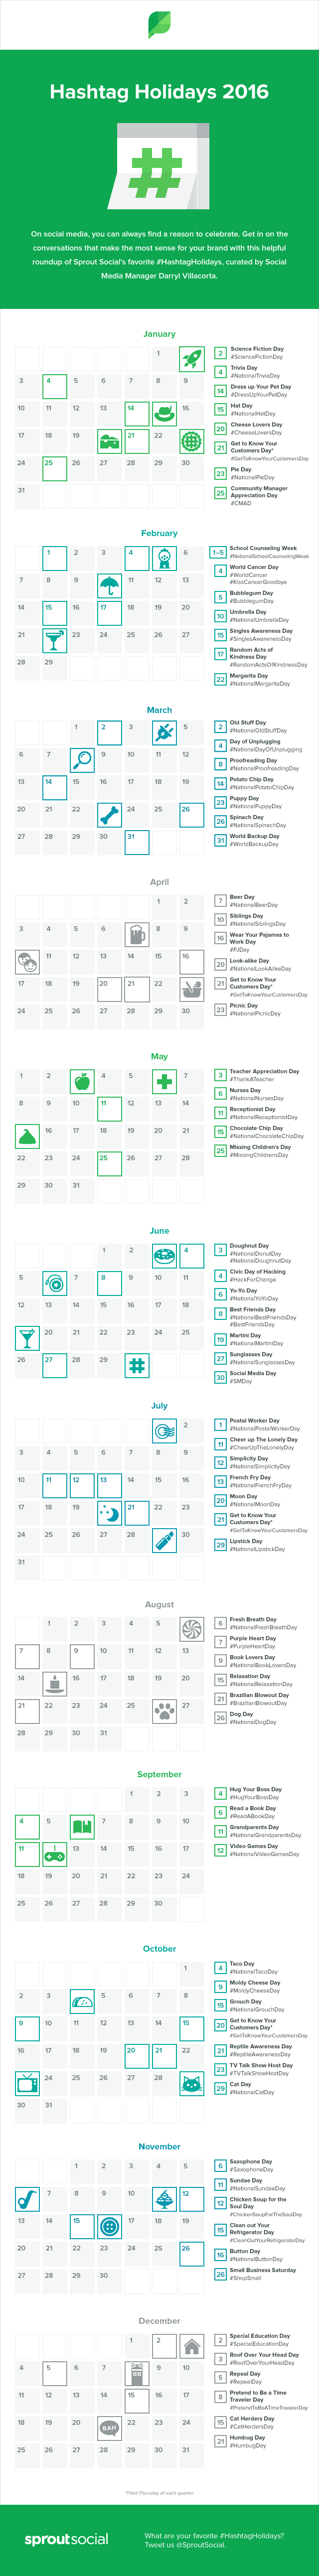 This new infographic from Sprout Social will help you keep track of all the lesser-known (but just as fun) social media holidays in 2016.